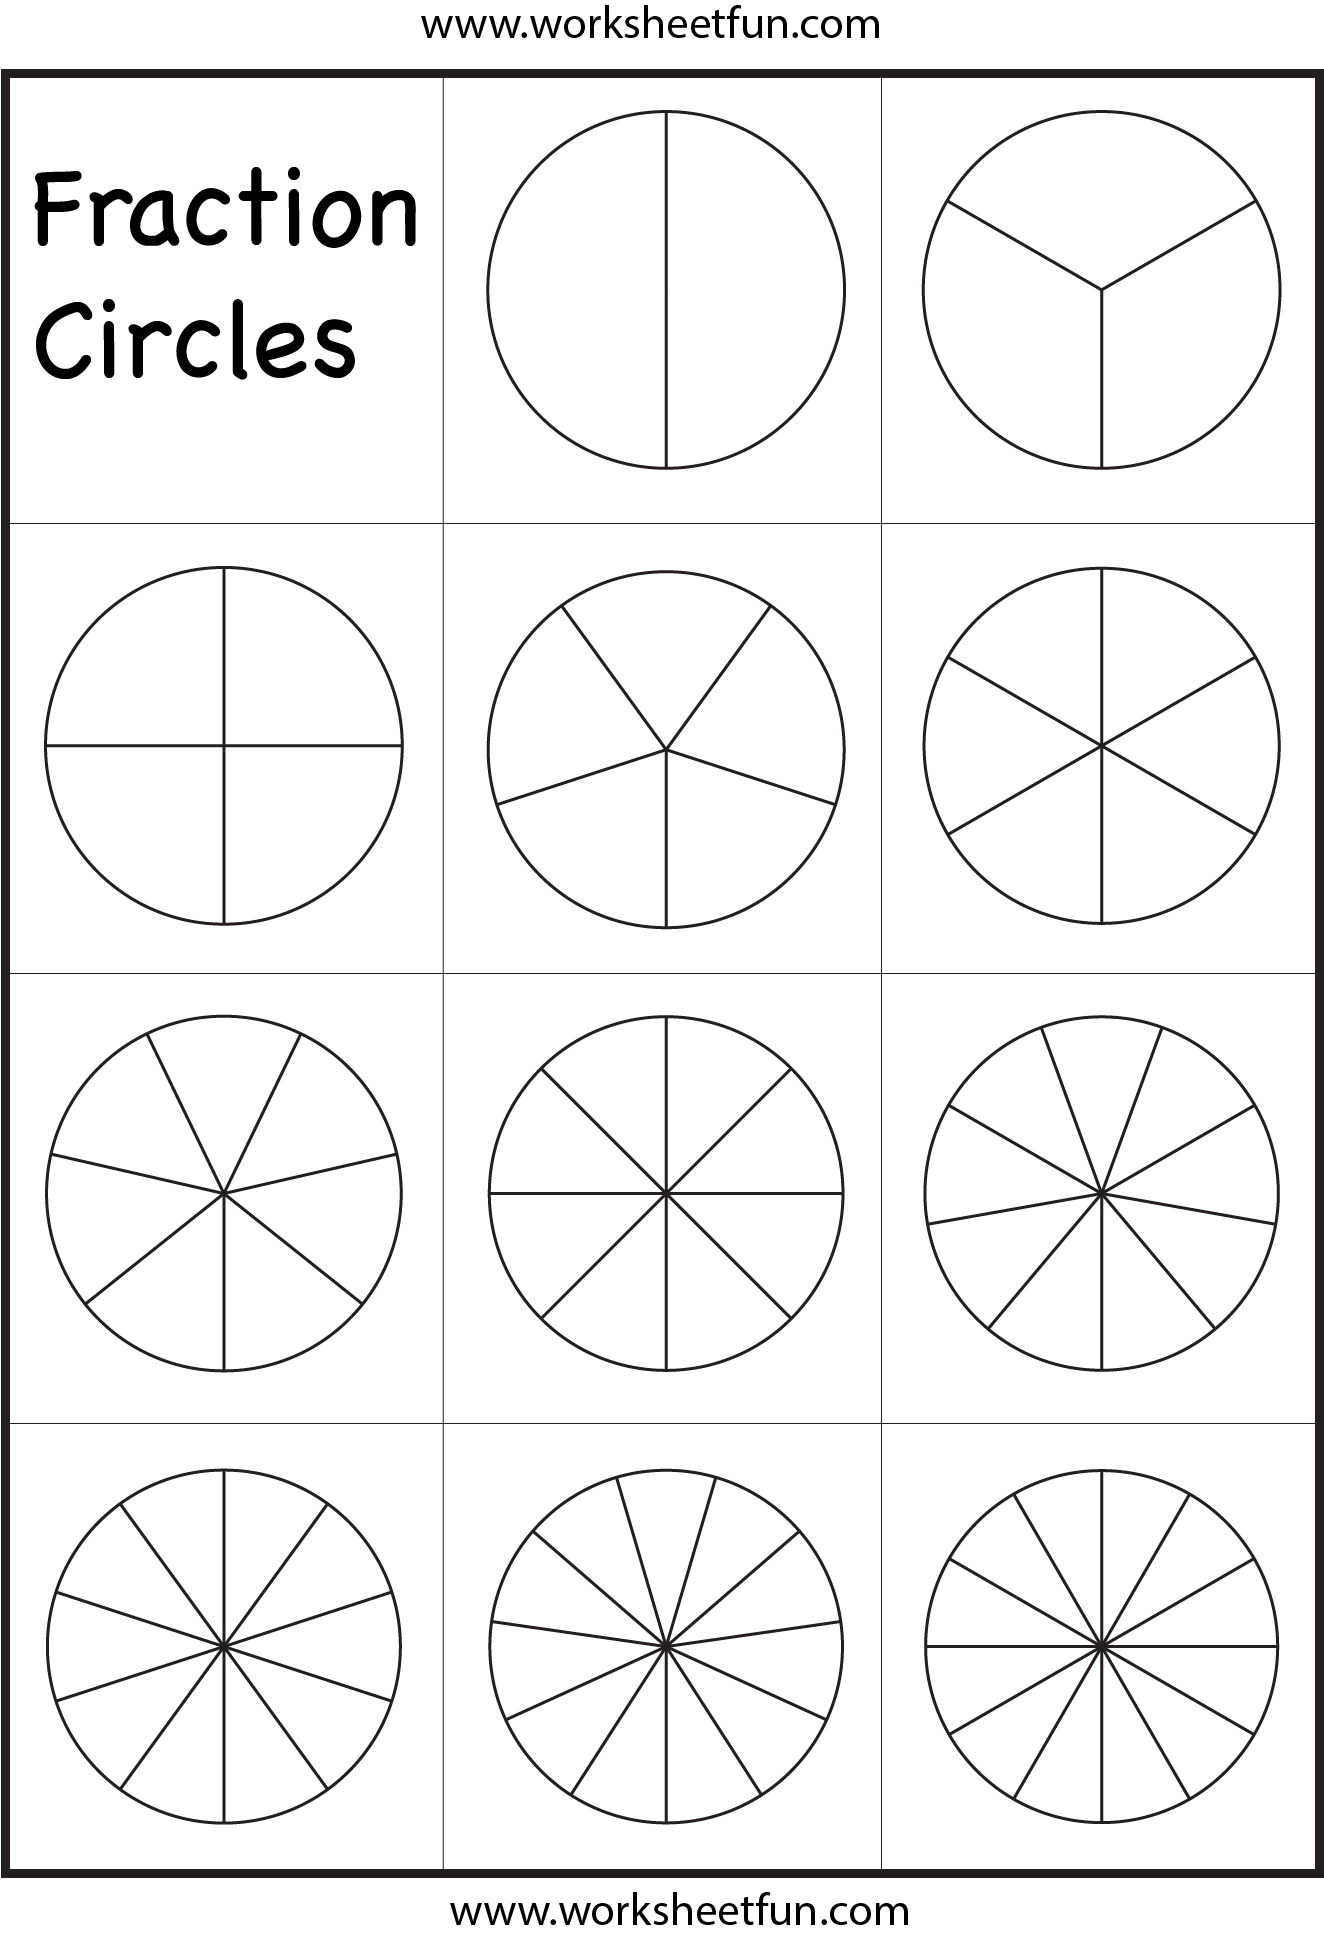 graphic regarding Fraction Circles Printable identified as portion circles worksheet portion worksheets pinterest